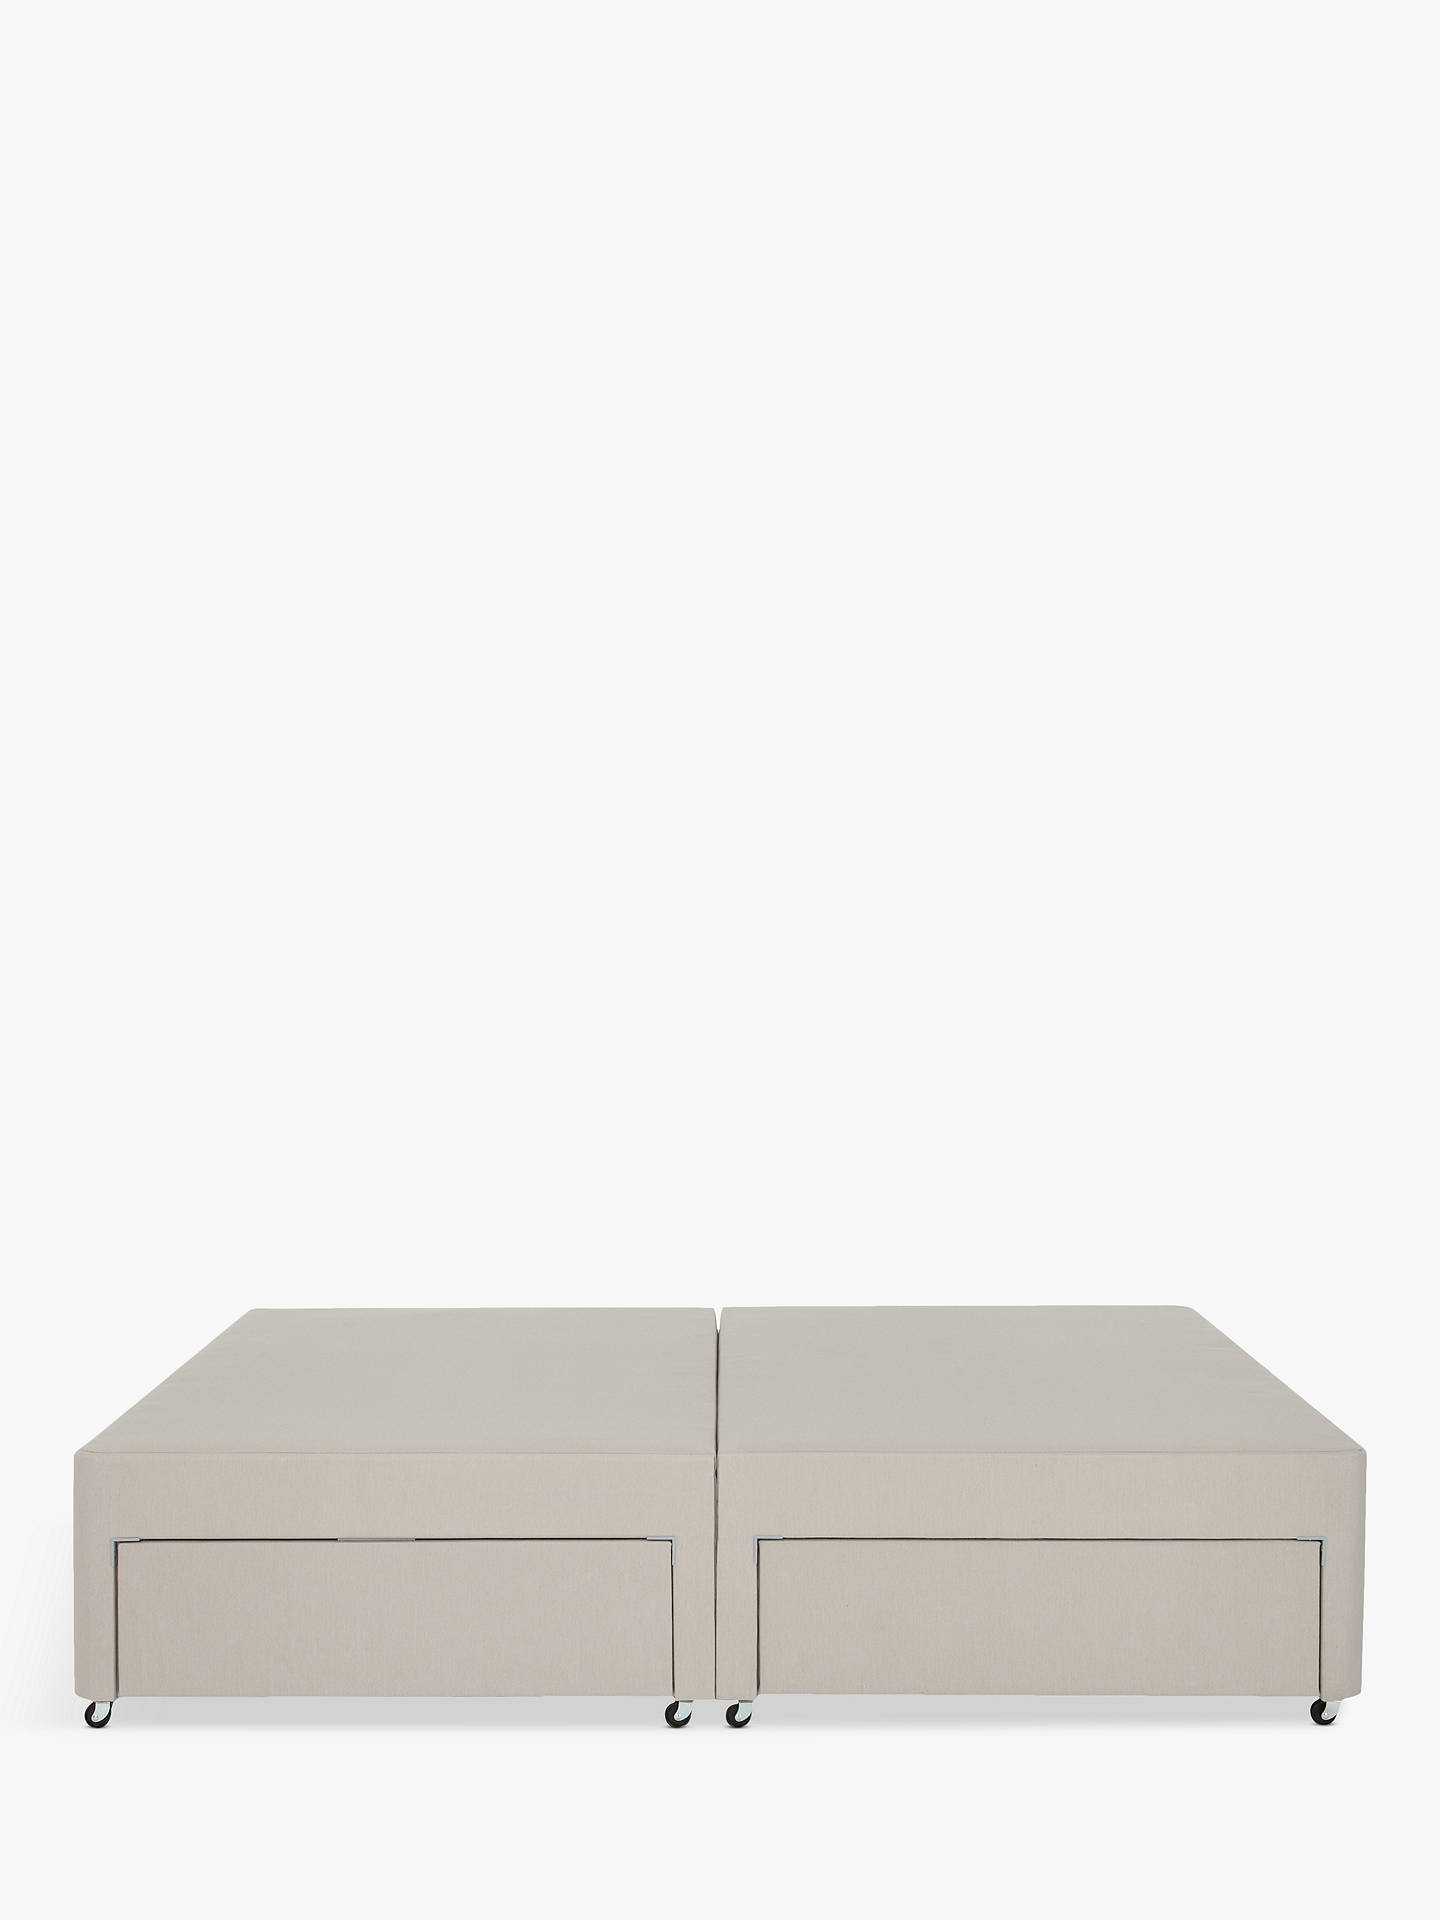 Buy John Lewis & Partners Non-Sprung 4 Drawer Divan Storage Bed, Light Grey, Double Online at johnlewis.com